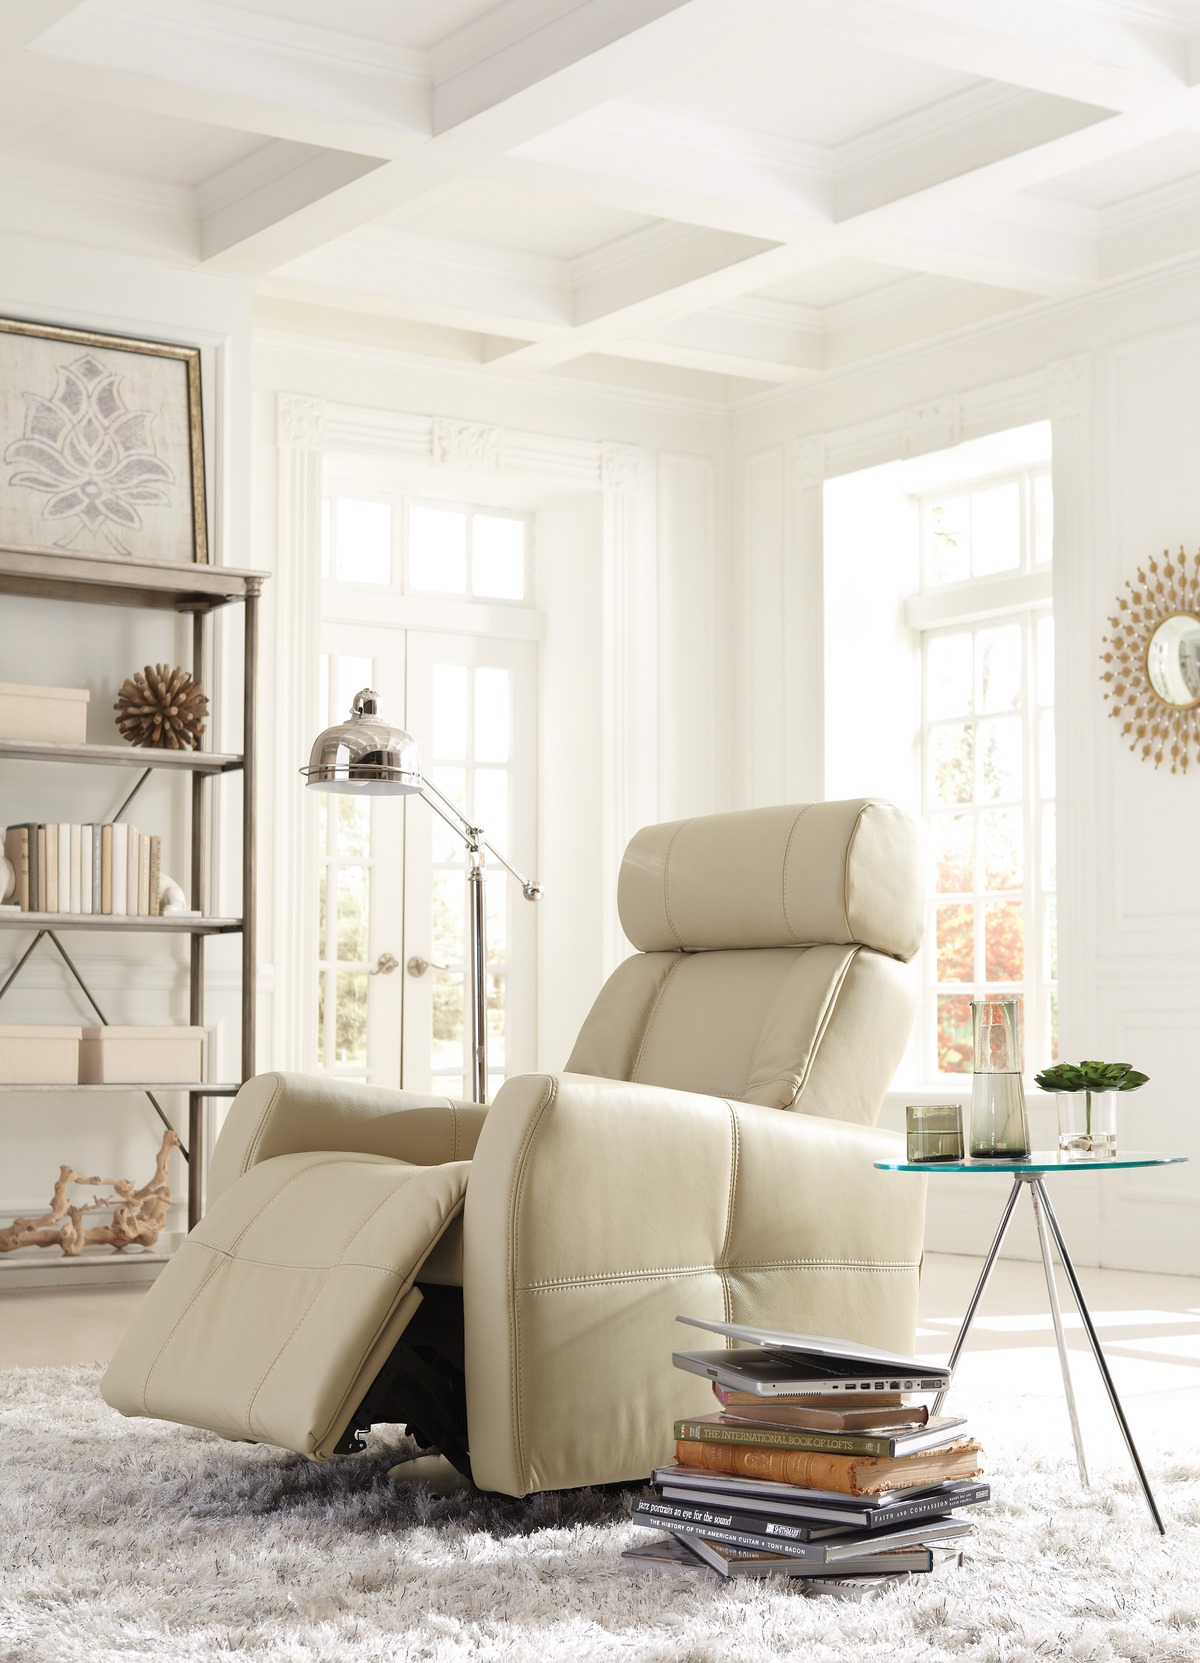 Myrtle Beach Leather Recliner 183 Leather Express Furniture